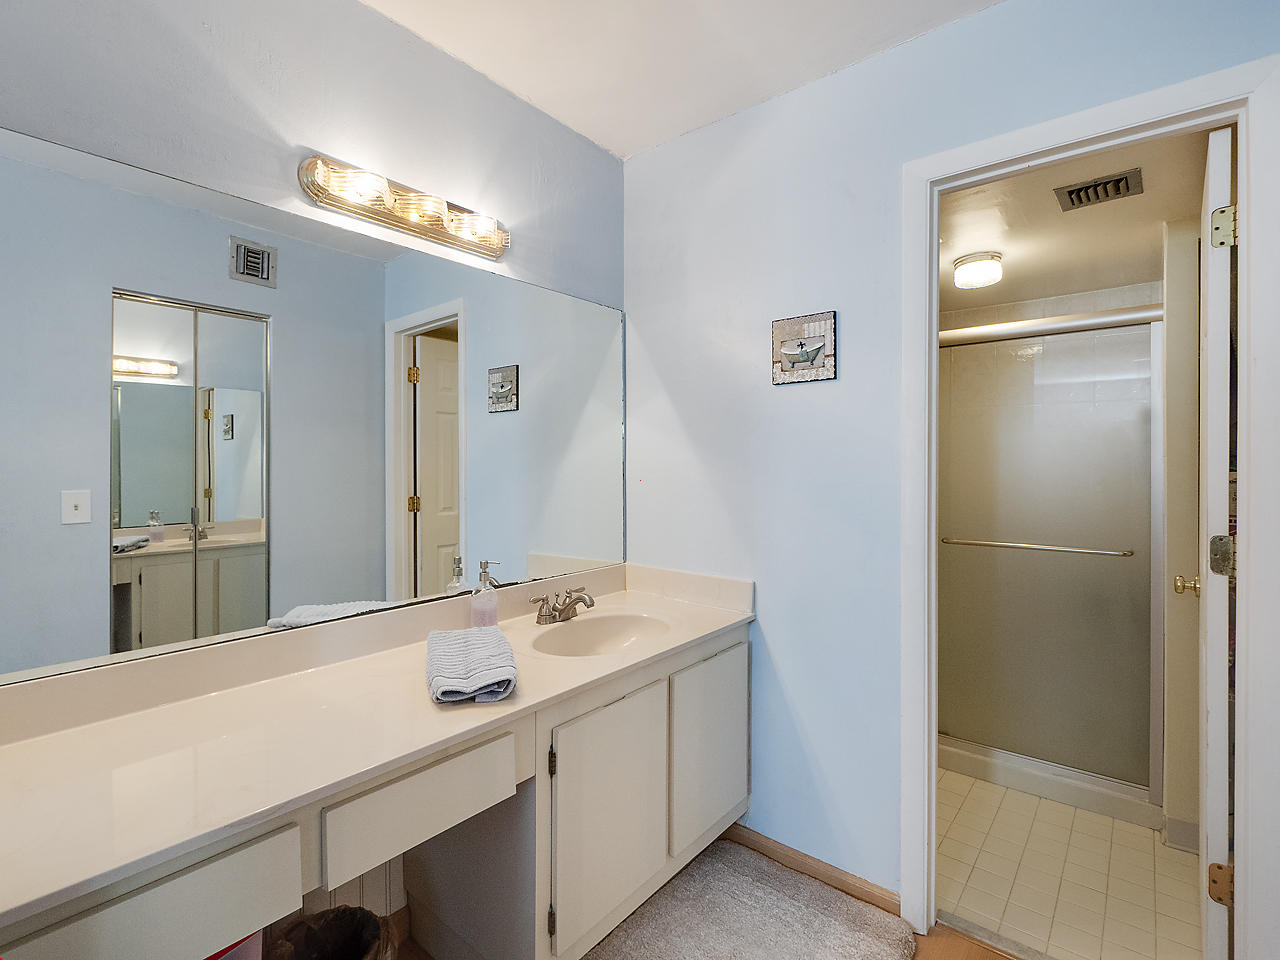 12926 Briarlake Drive 202, Palm Beach Gardens, Florida 33418, 2 Bedrooms Bedrooms, ,2 BathroomsBathrooms,A,Condominium,Briarlake,RX-10426932